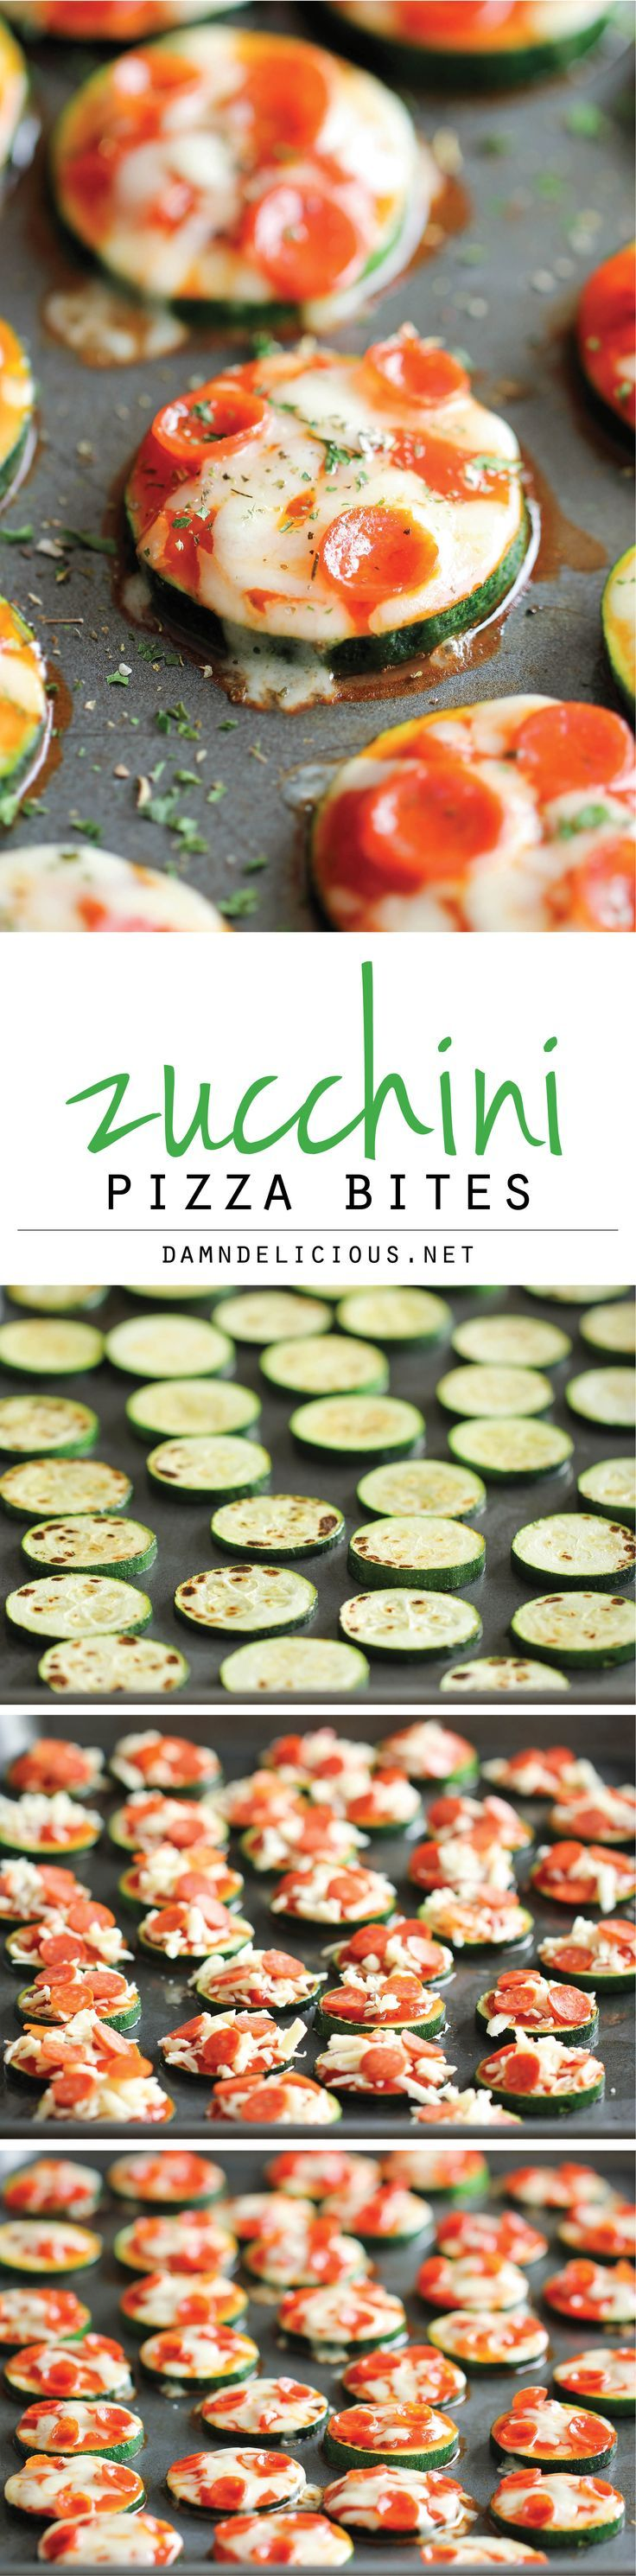 Zucchini Pizza Bites - Healthy, nutritious pizza bites that come together in…